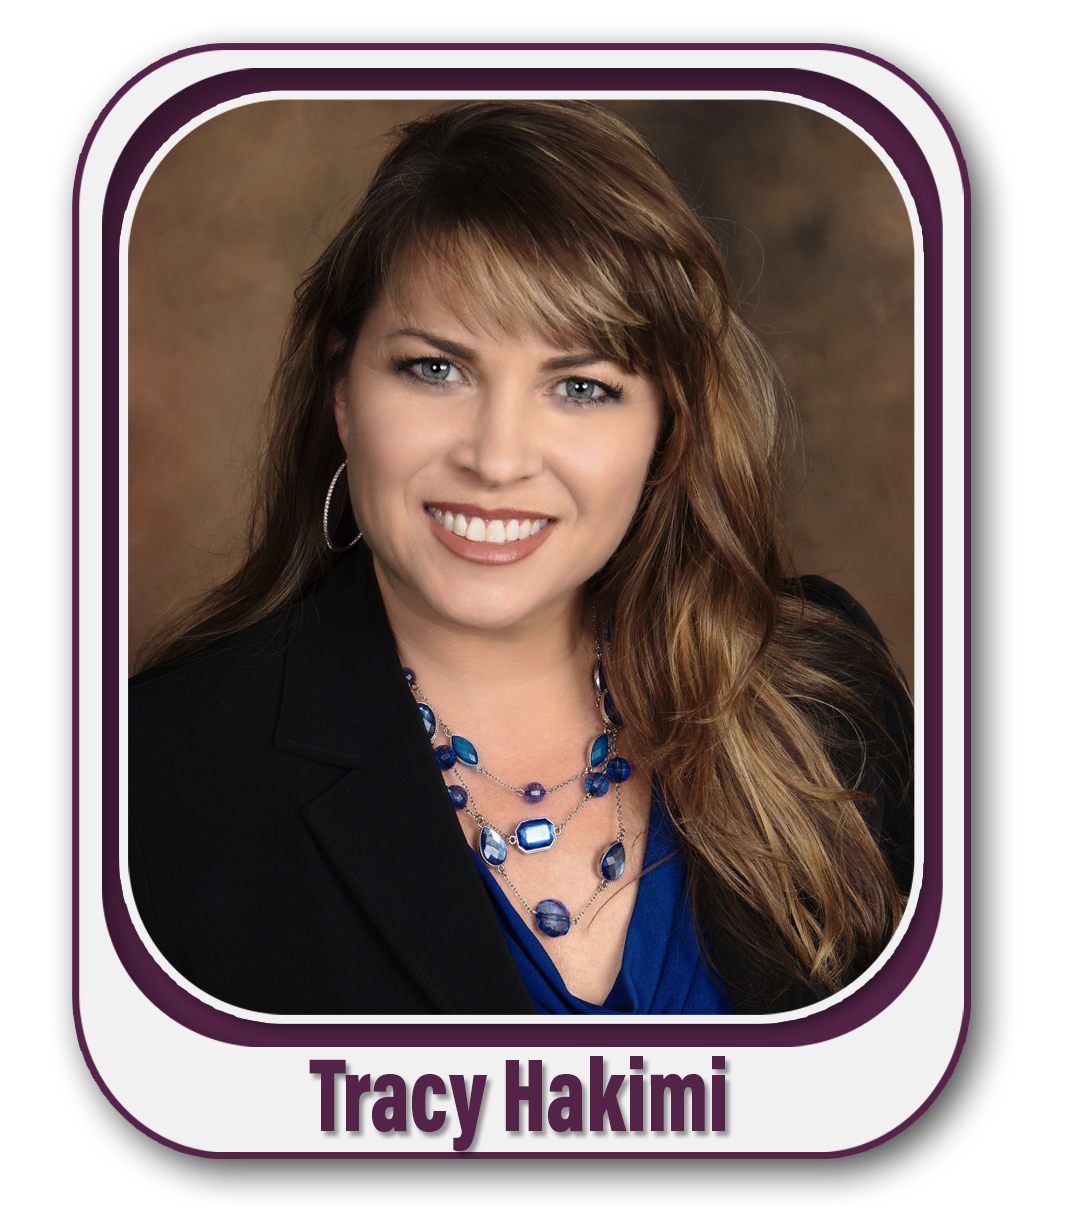 Tracy Hakimi Denver Realtor specializing in school related topics